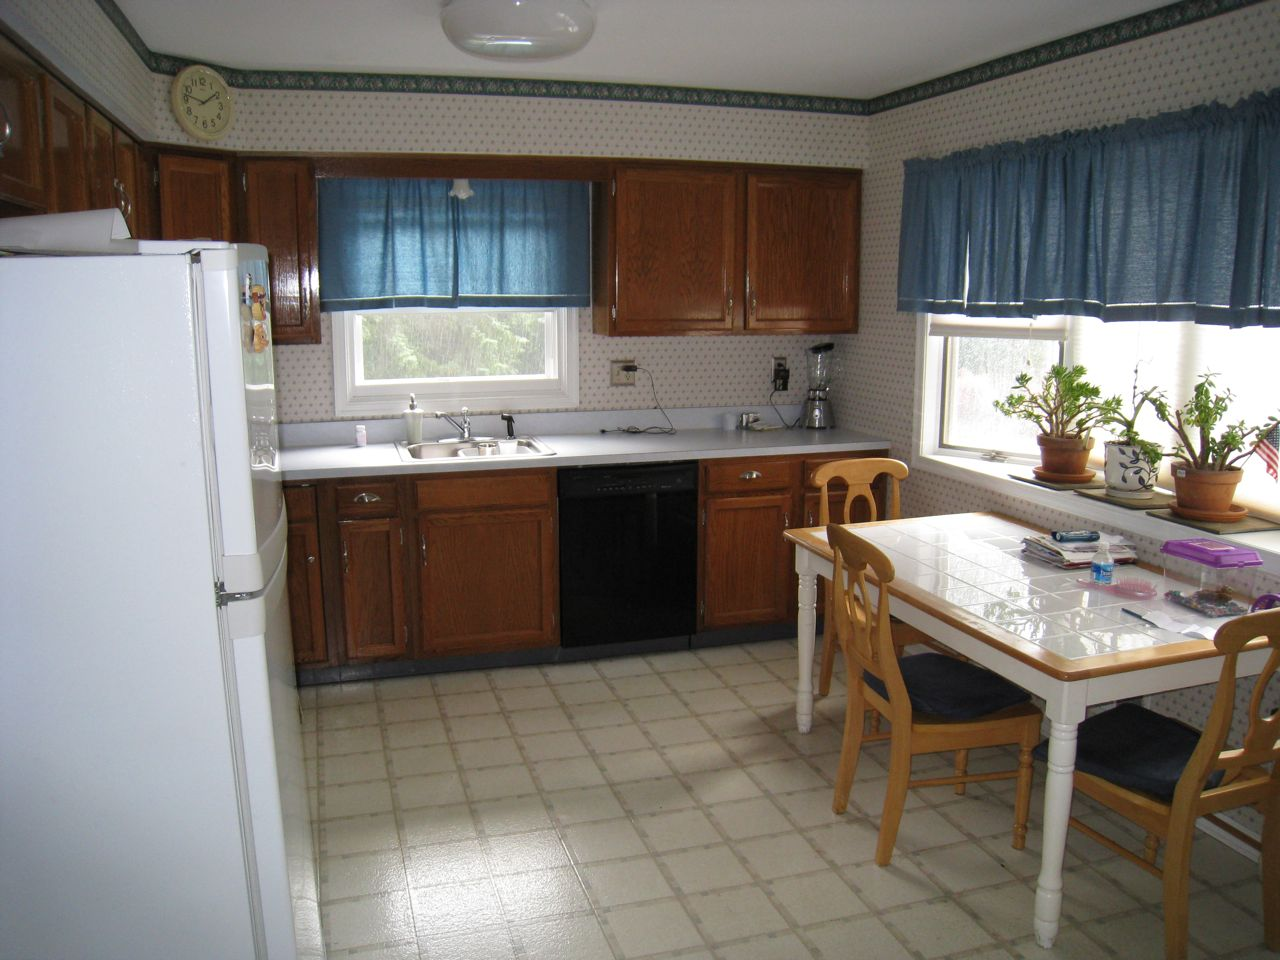 New Home-How to Spruce up dated kitchen? (laminate, floor ...